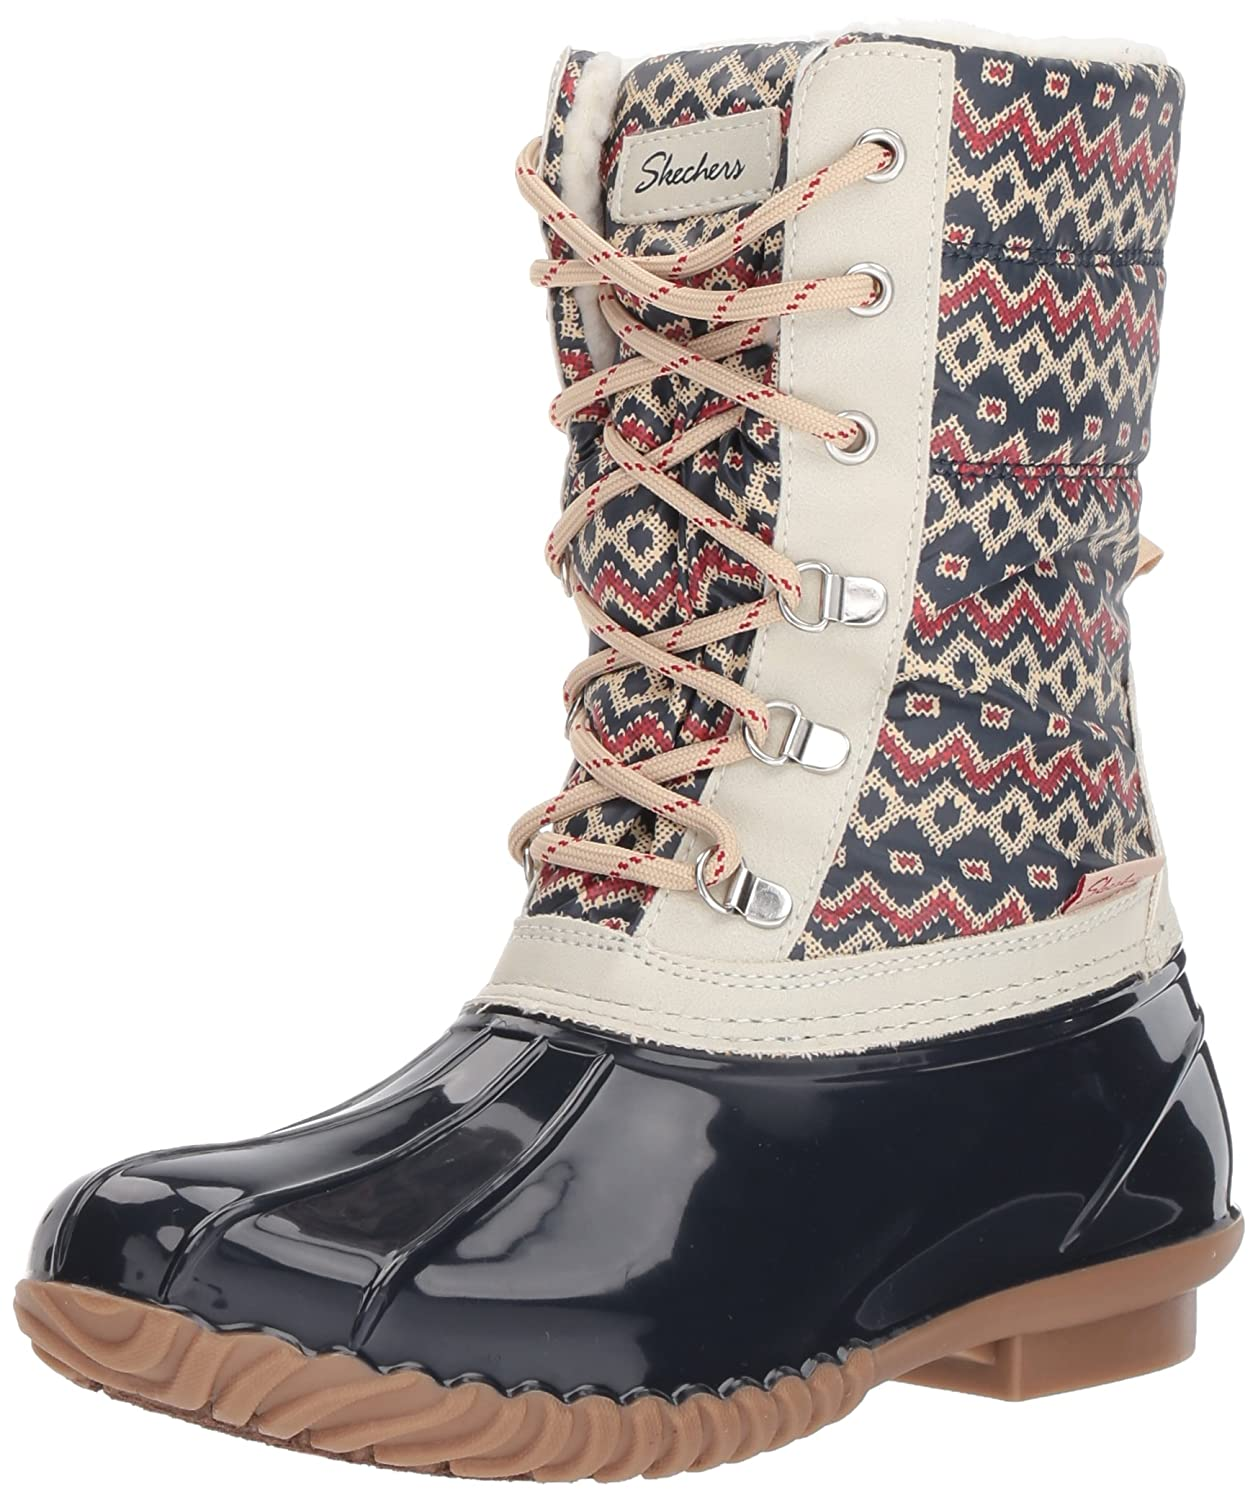 Skechers Women's Hampshire-Printed Quilted Snow Boot B071F43KV1 6 M US|Navy Natural